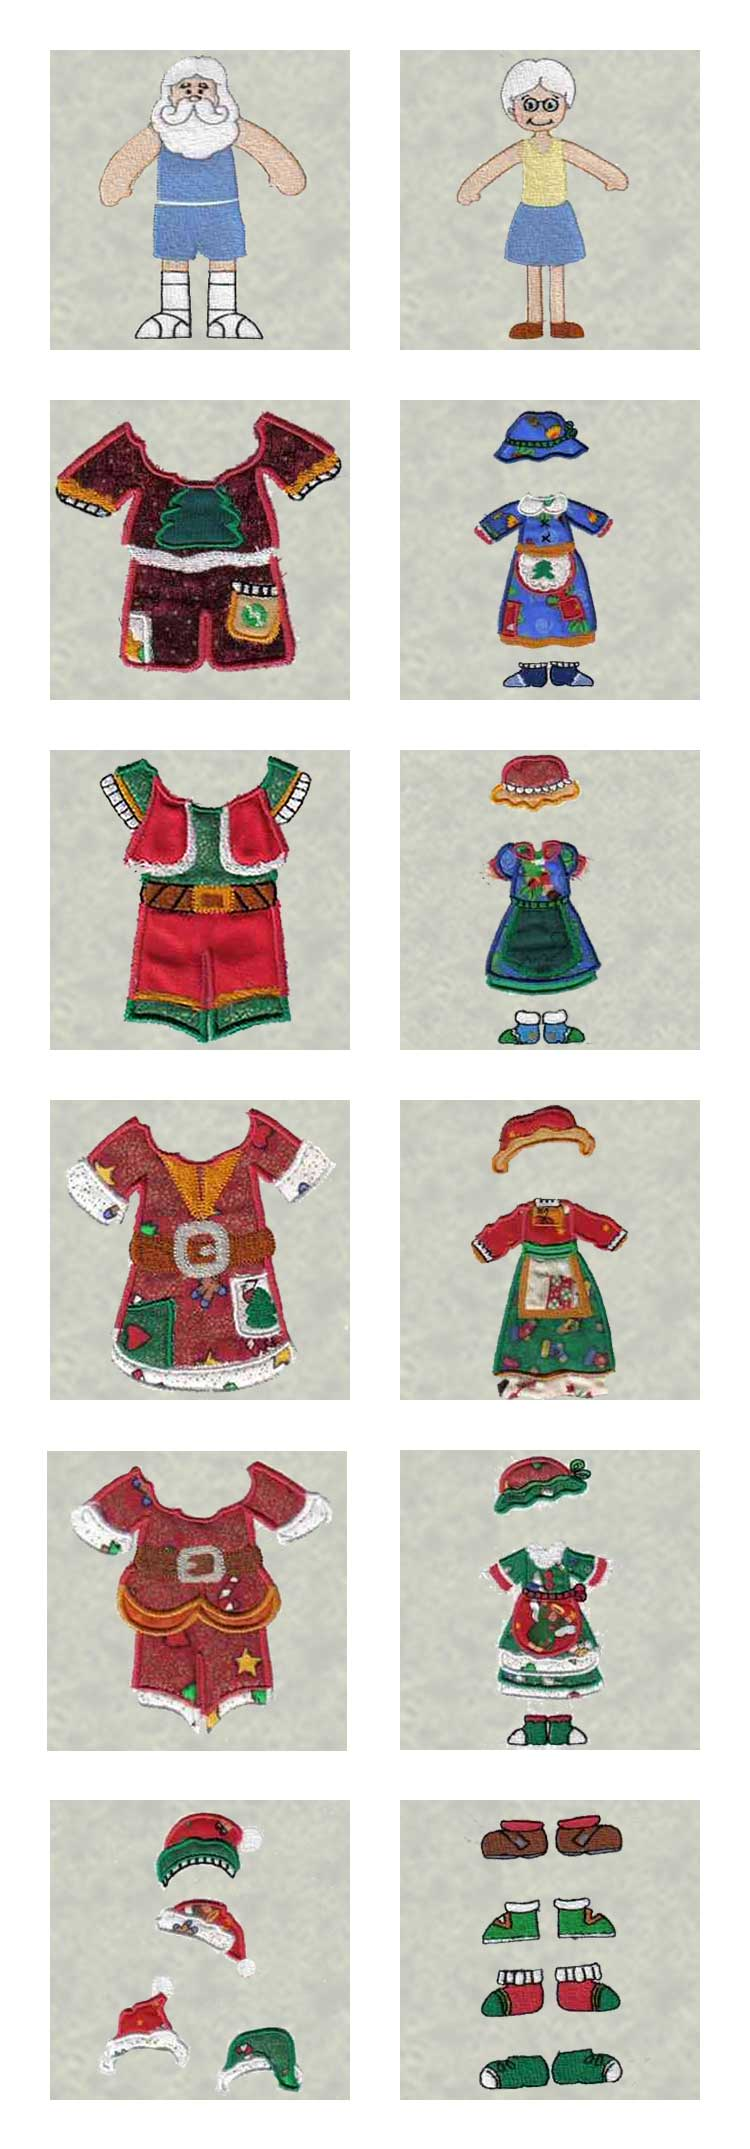 Mr and Mrs Santa Paper Dolls Embroidery Machine Design Details